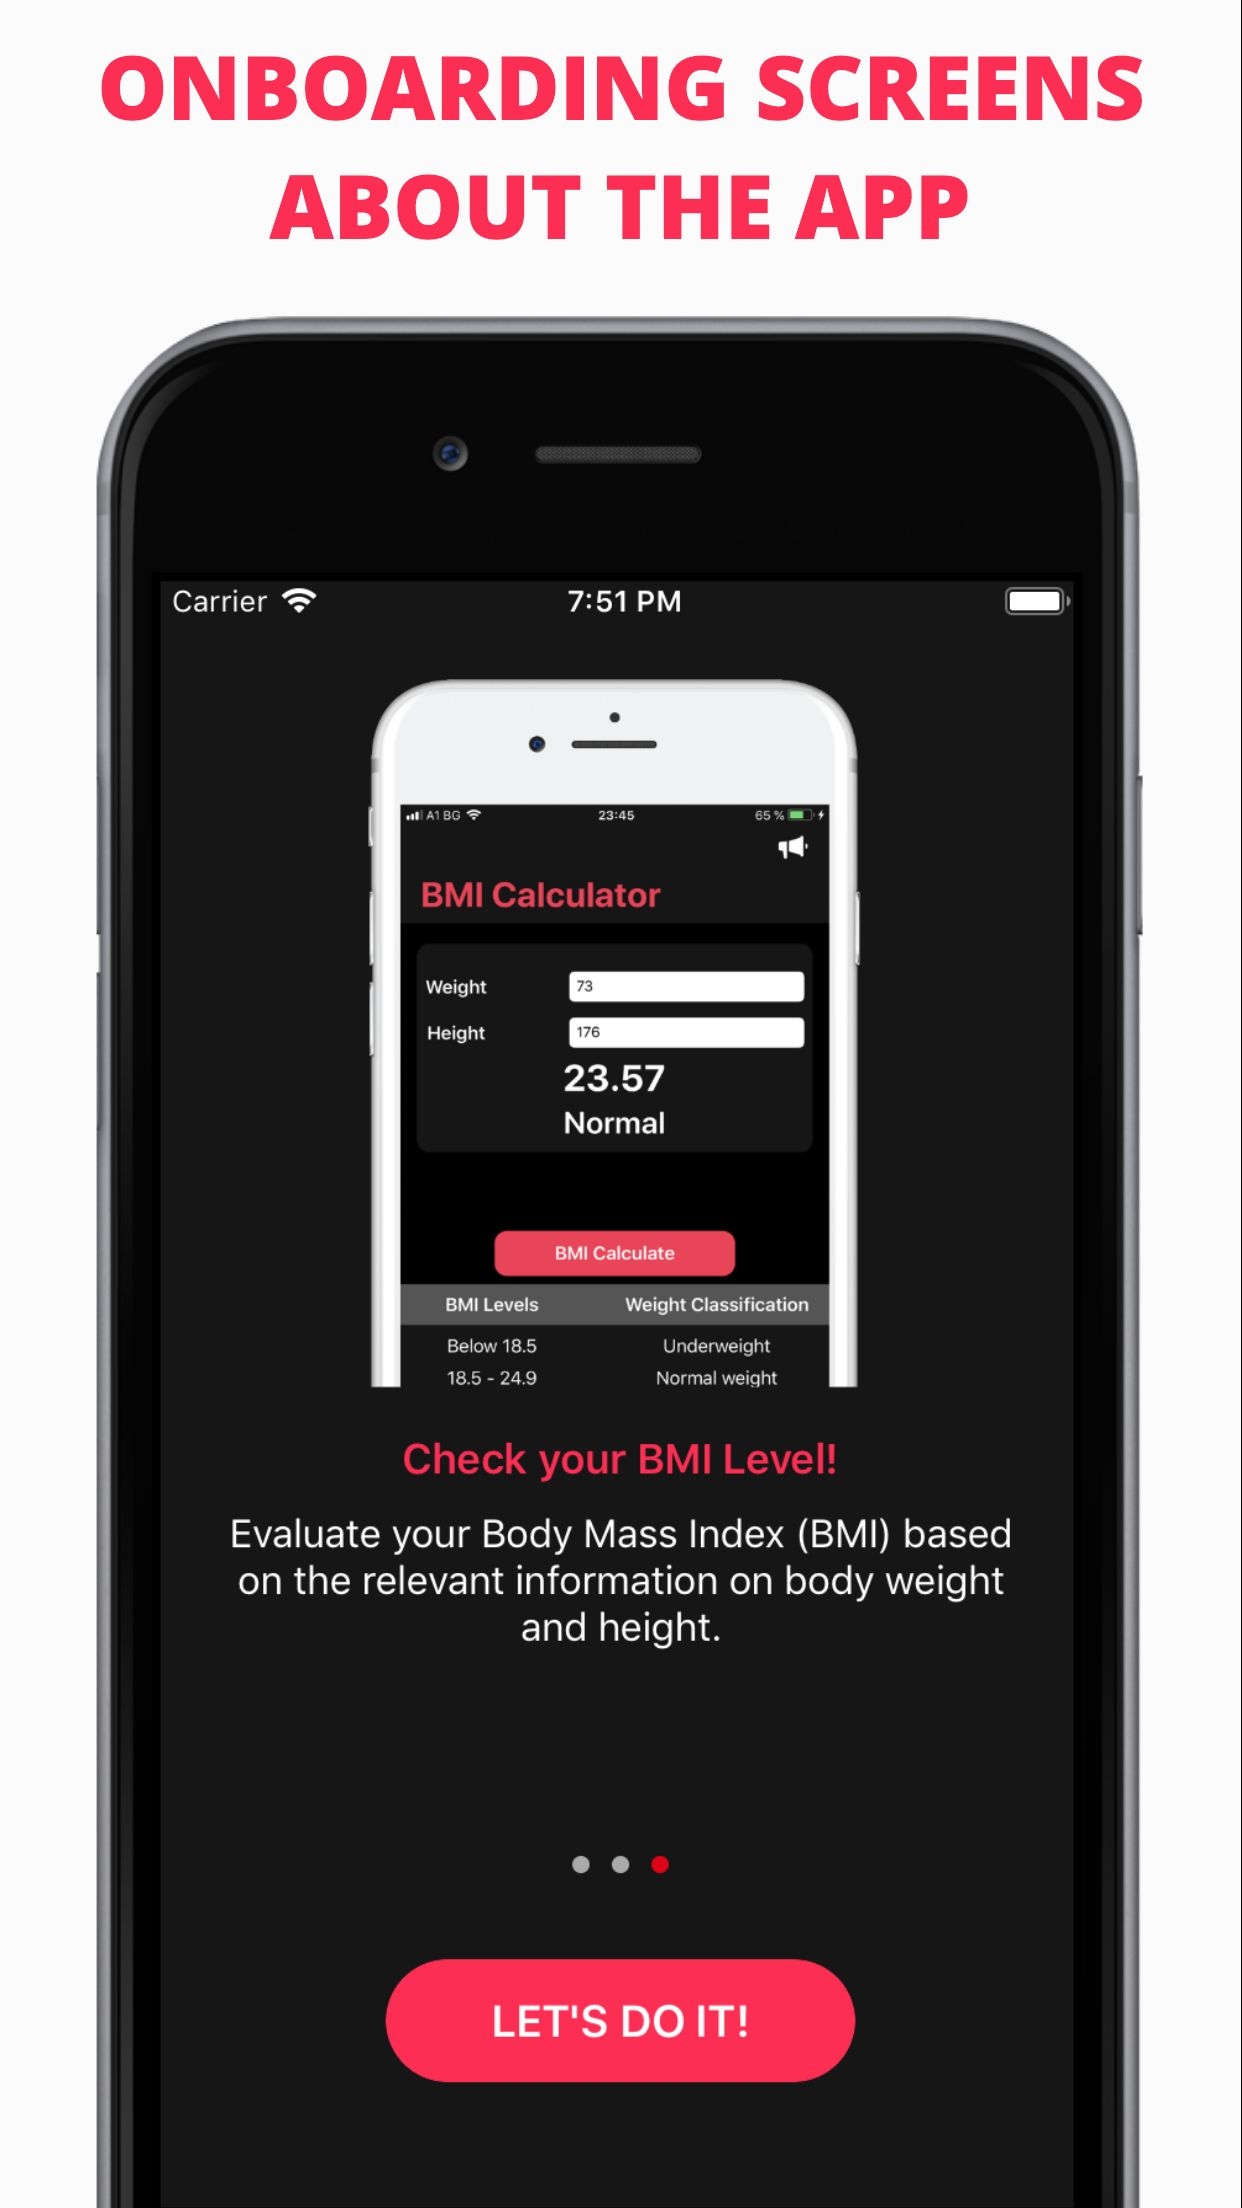 Easy Workout - iOS Fitness Application  Screenshot 2